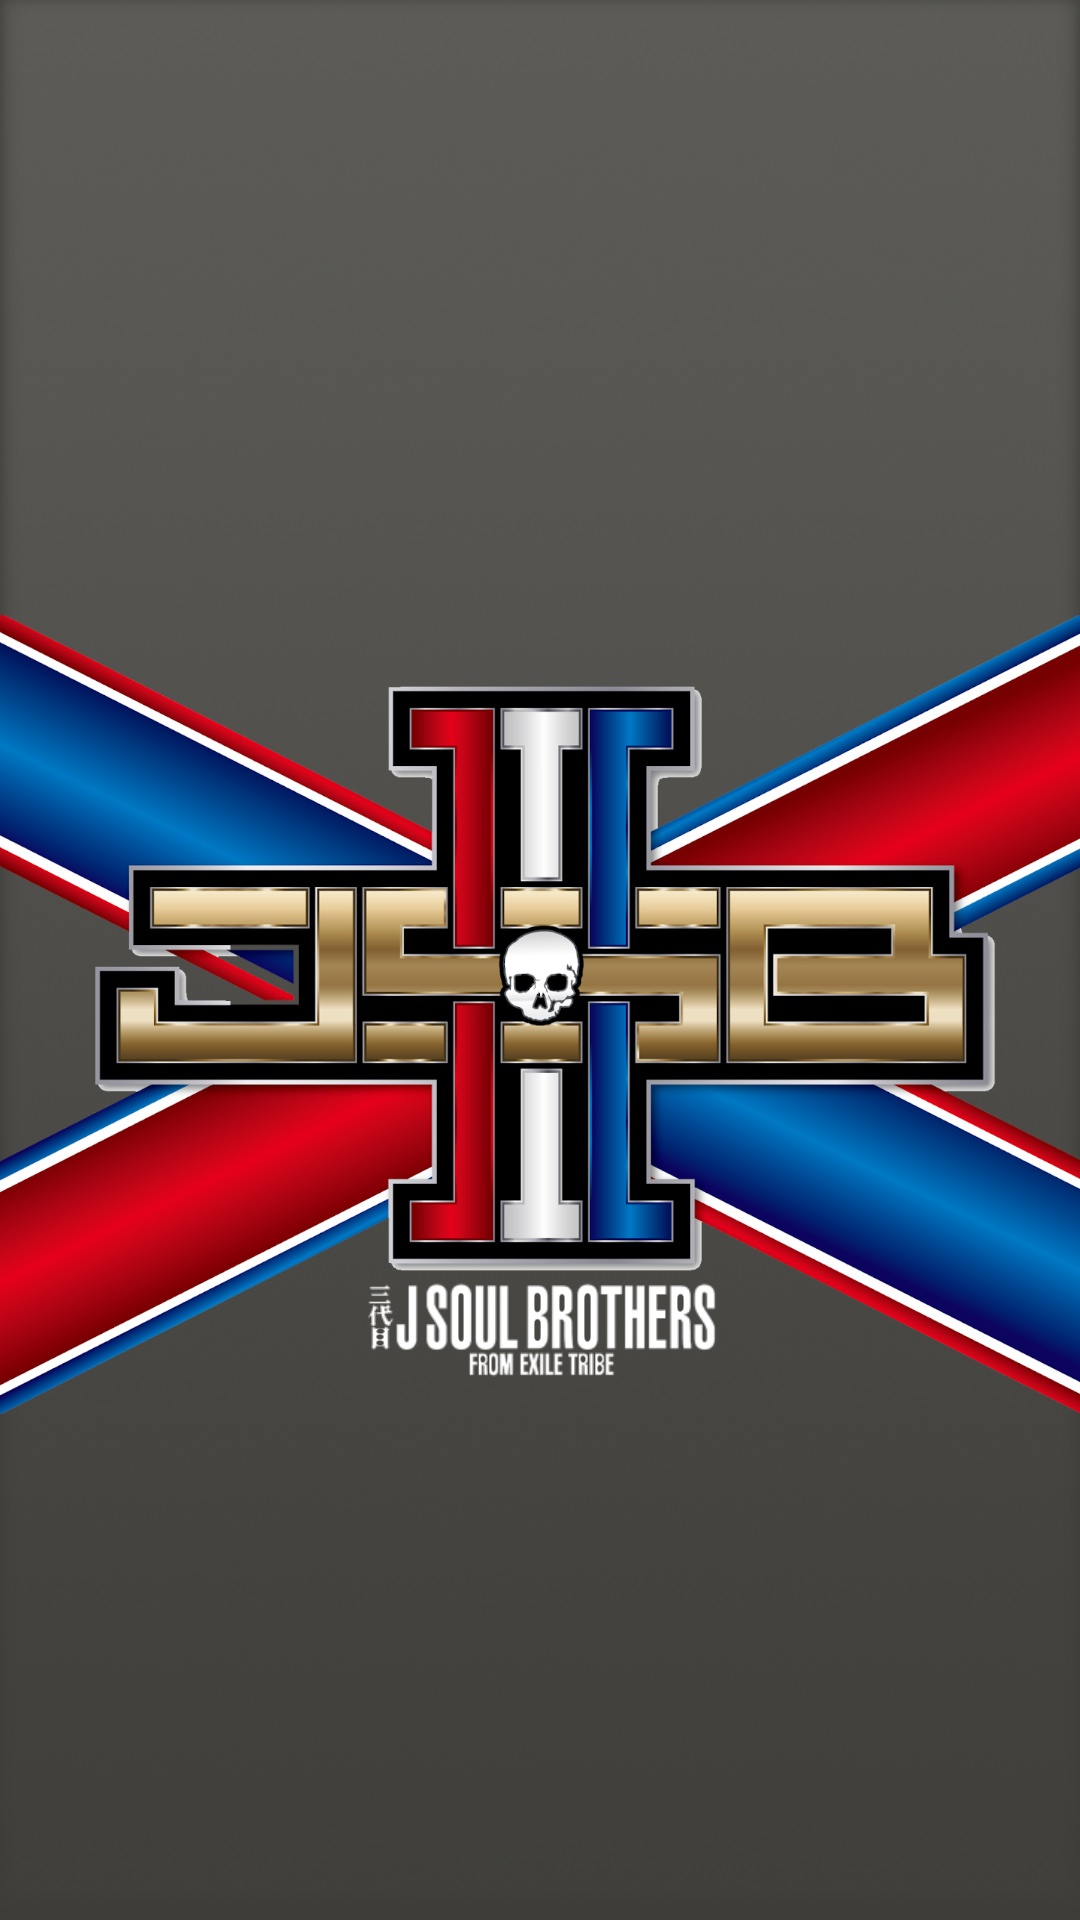 3jsb i35 - 三代目 J SOUL BROTHERSの高画質スマホ壁紙40枚 [iPhone&Androidに対応]